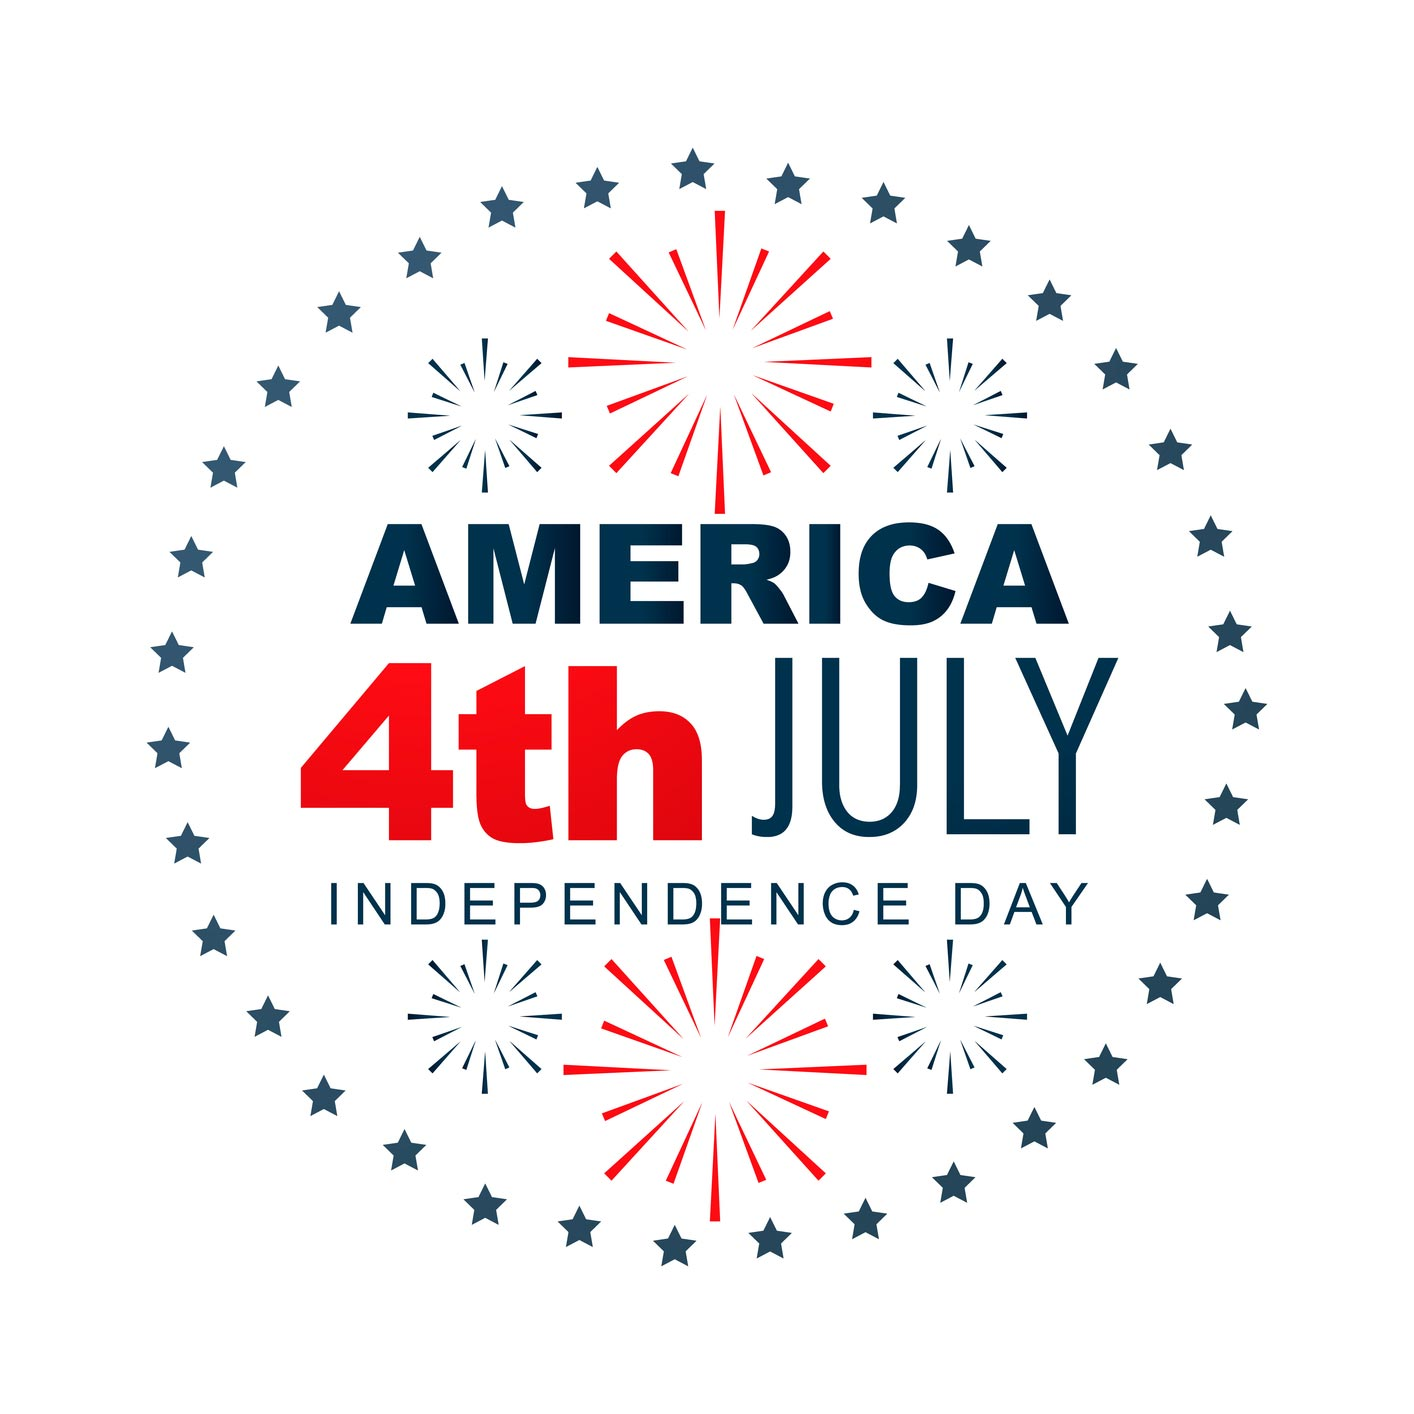 America 4th July Independence Day Greeting